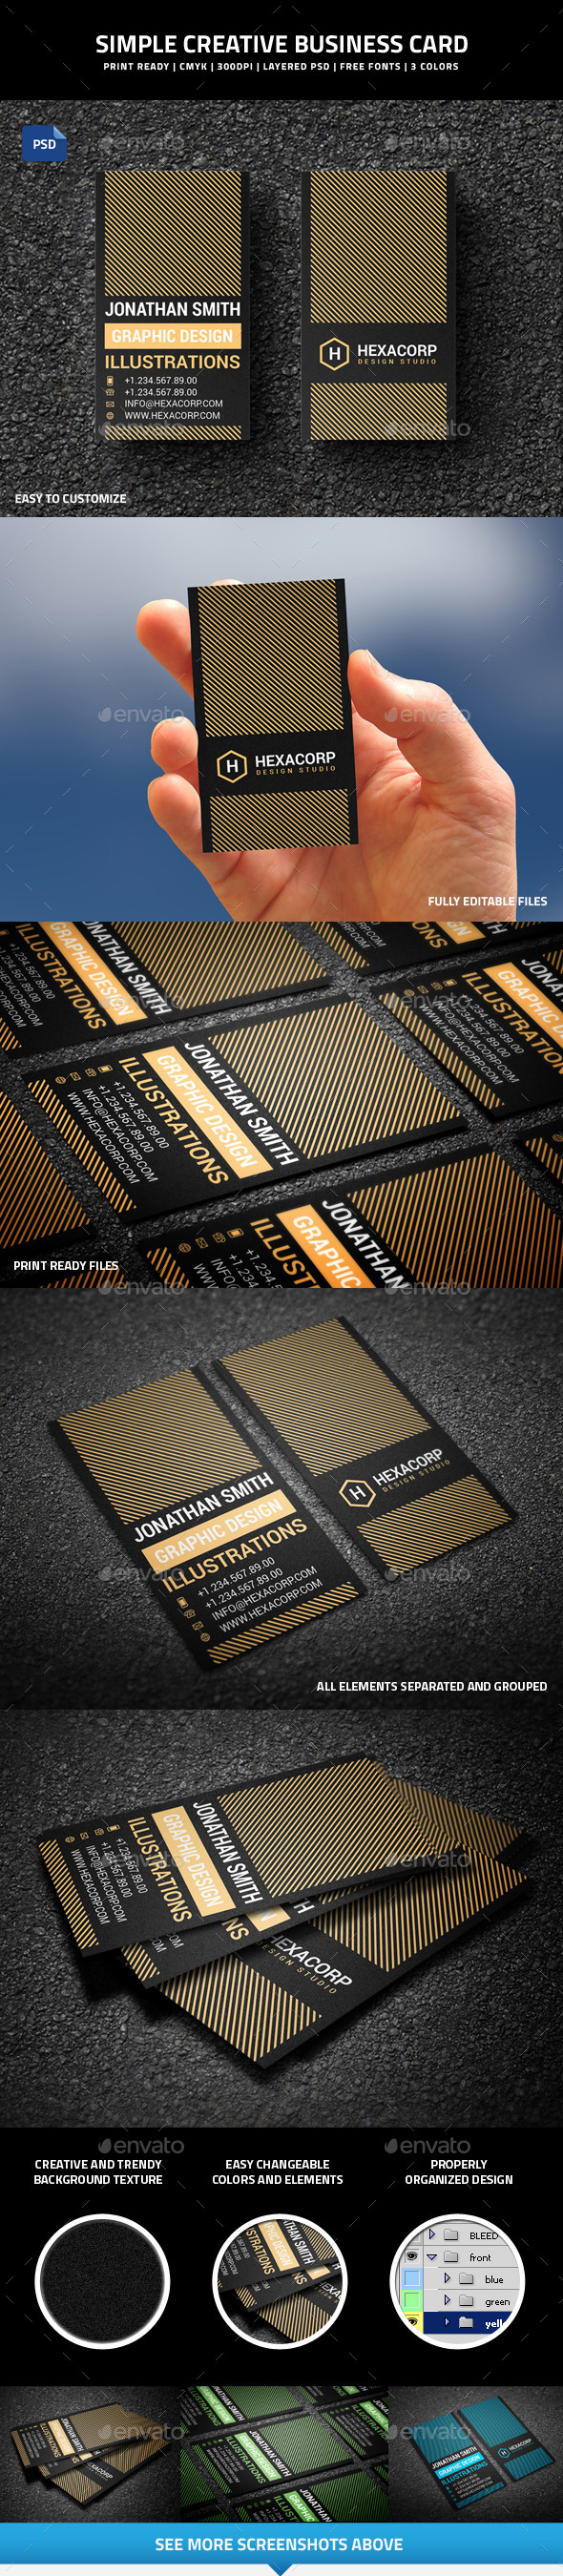 GraphicRiver Simple Creative Business Card 51 9760885